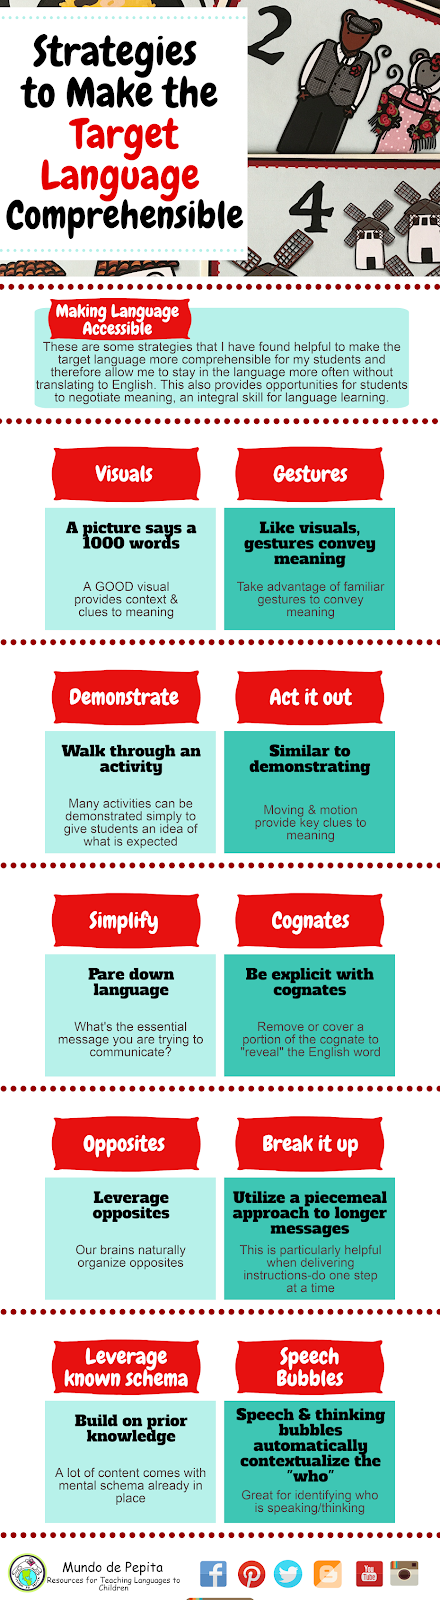 Strategies to make target language comprehensible